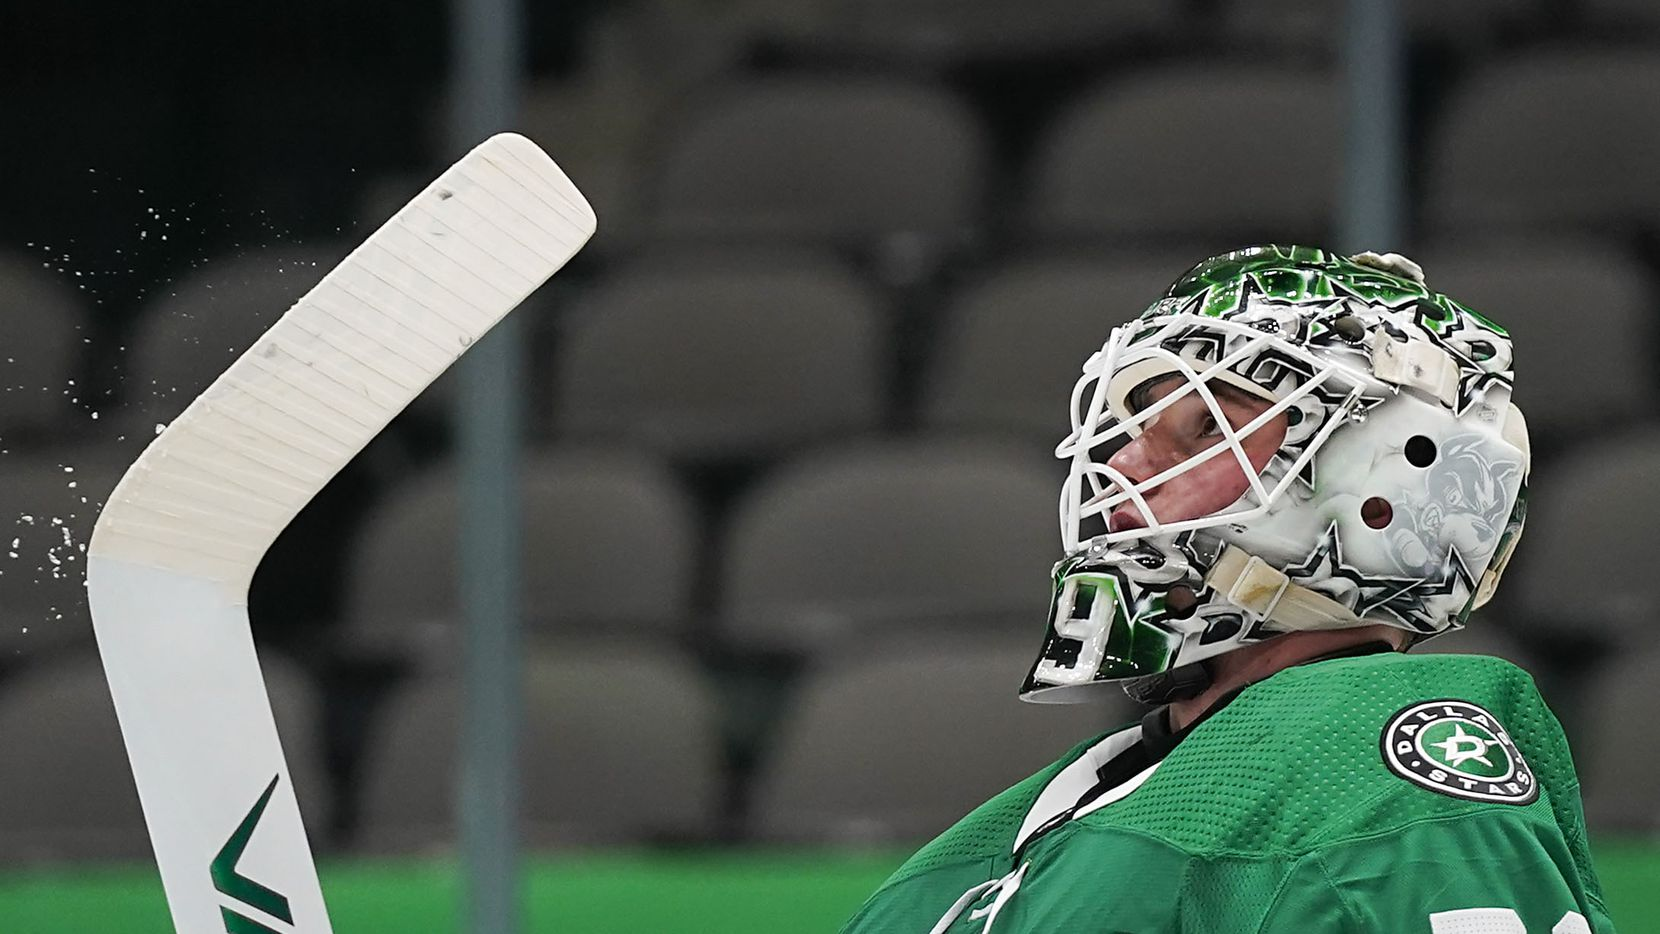 Dallas Stars goaltender Jake Oettinger reacts after giving up a Tampa Bay Lightning goal during the second period of an NHL hockey game at the American Airlines Center on Thursday, March 25, 2021, in Dallas. (Smiley N. Pool/The Dallas Morning News)